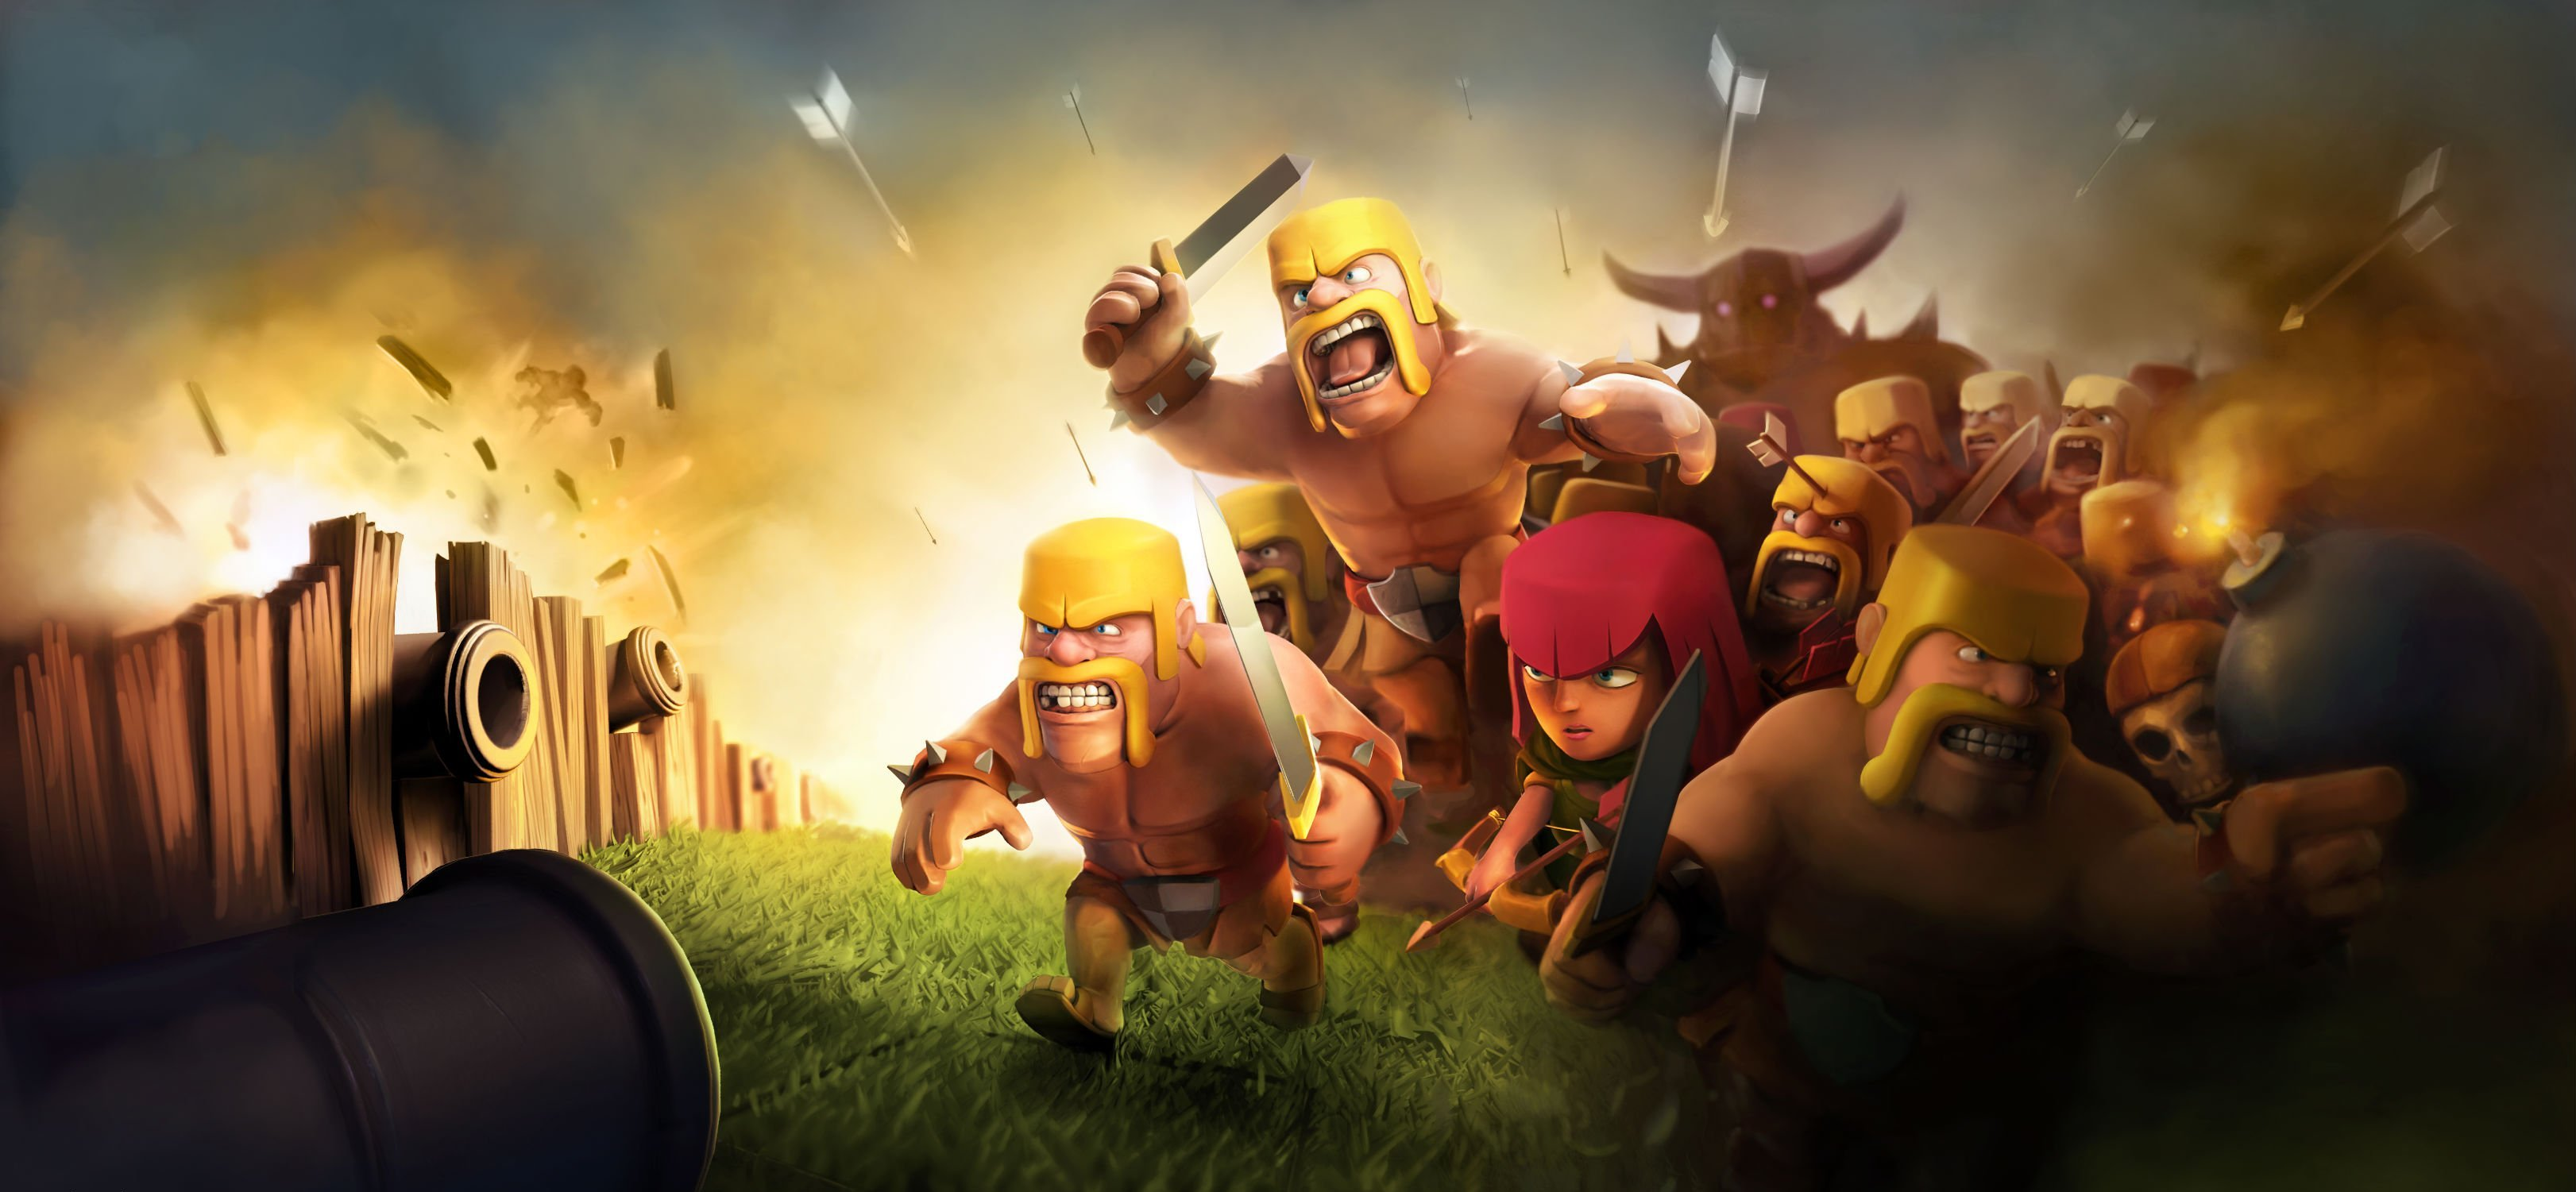 Barbarian Clash Of Clans Hd Hd Games 4k Wallpapers: 2048x1152 Clash Of Clans HD 2048x1152 Resolution HD 4k